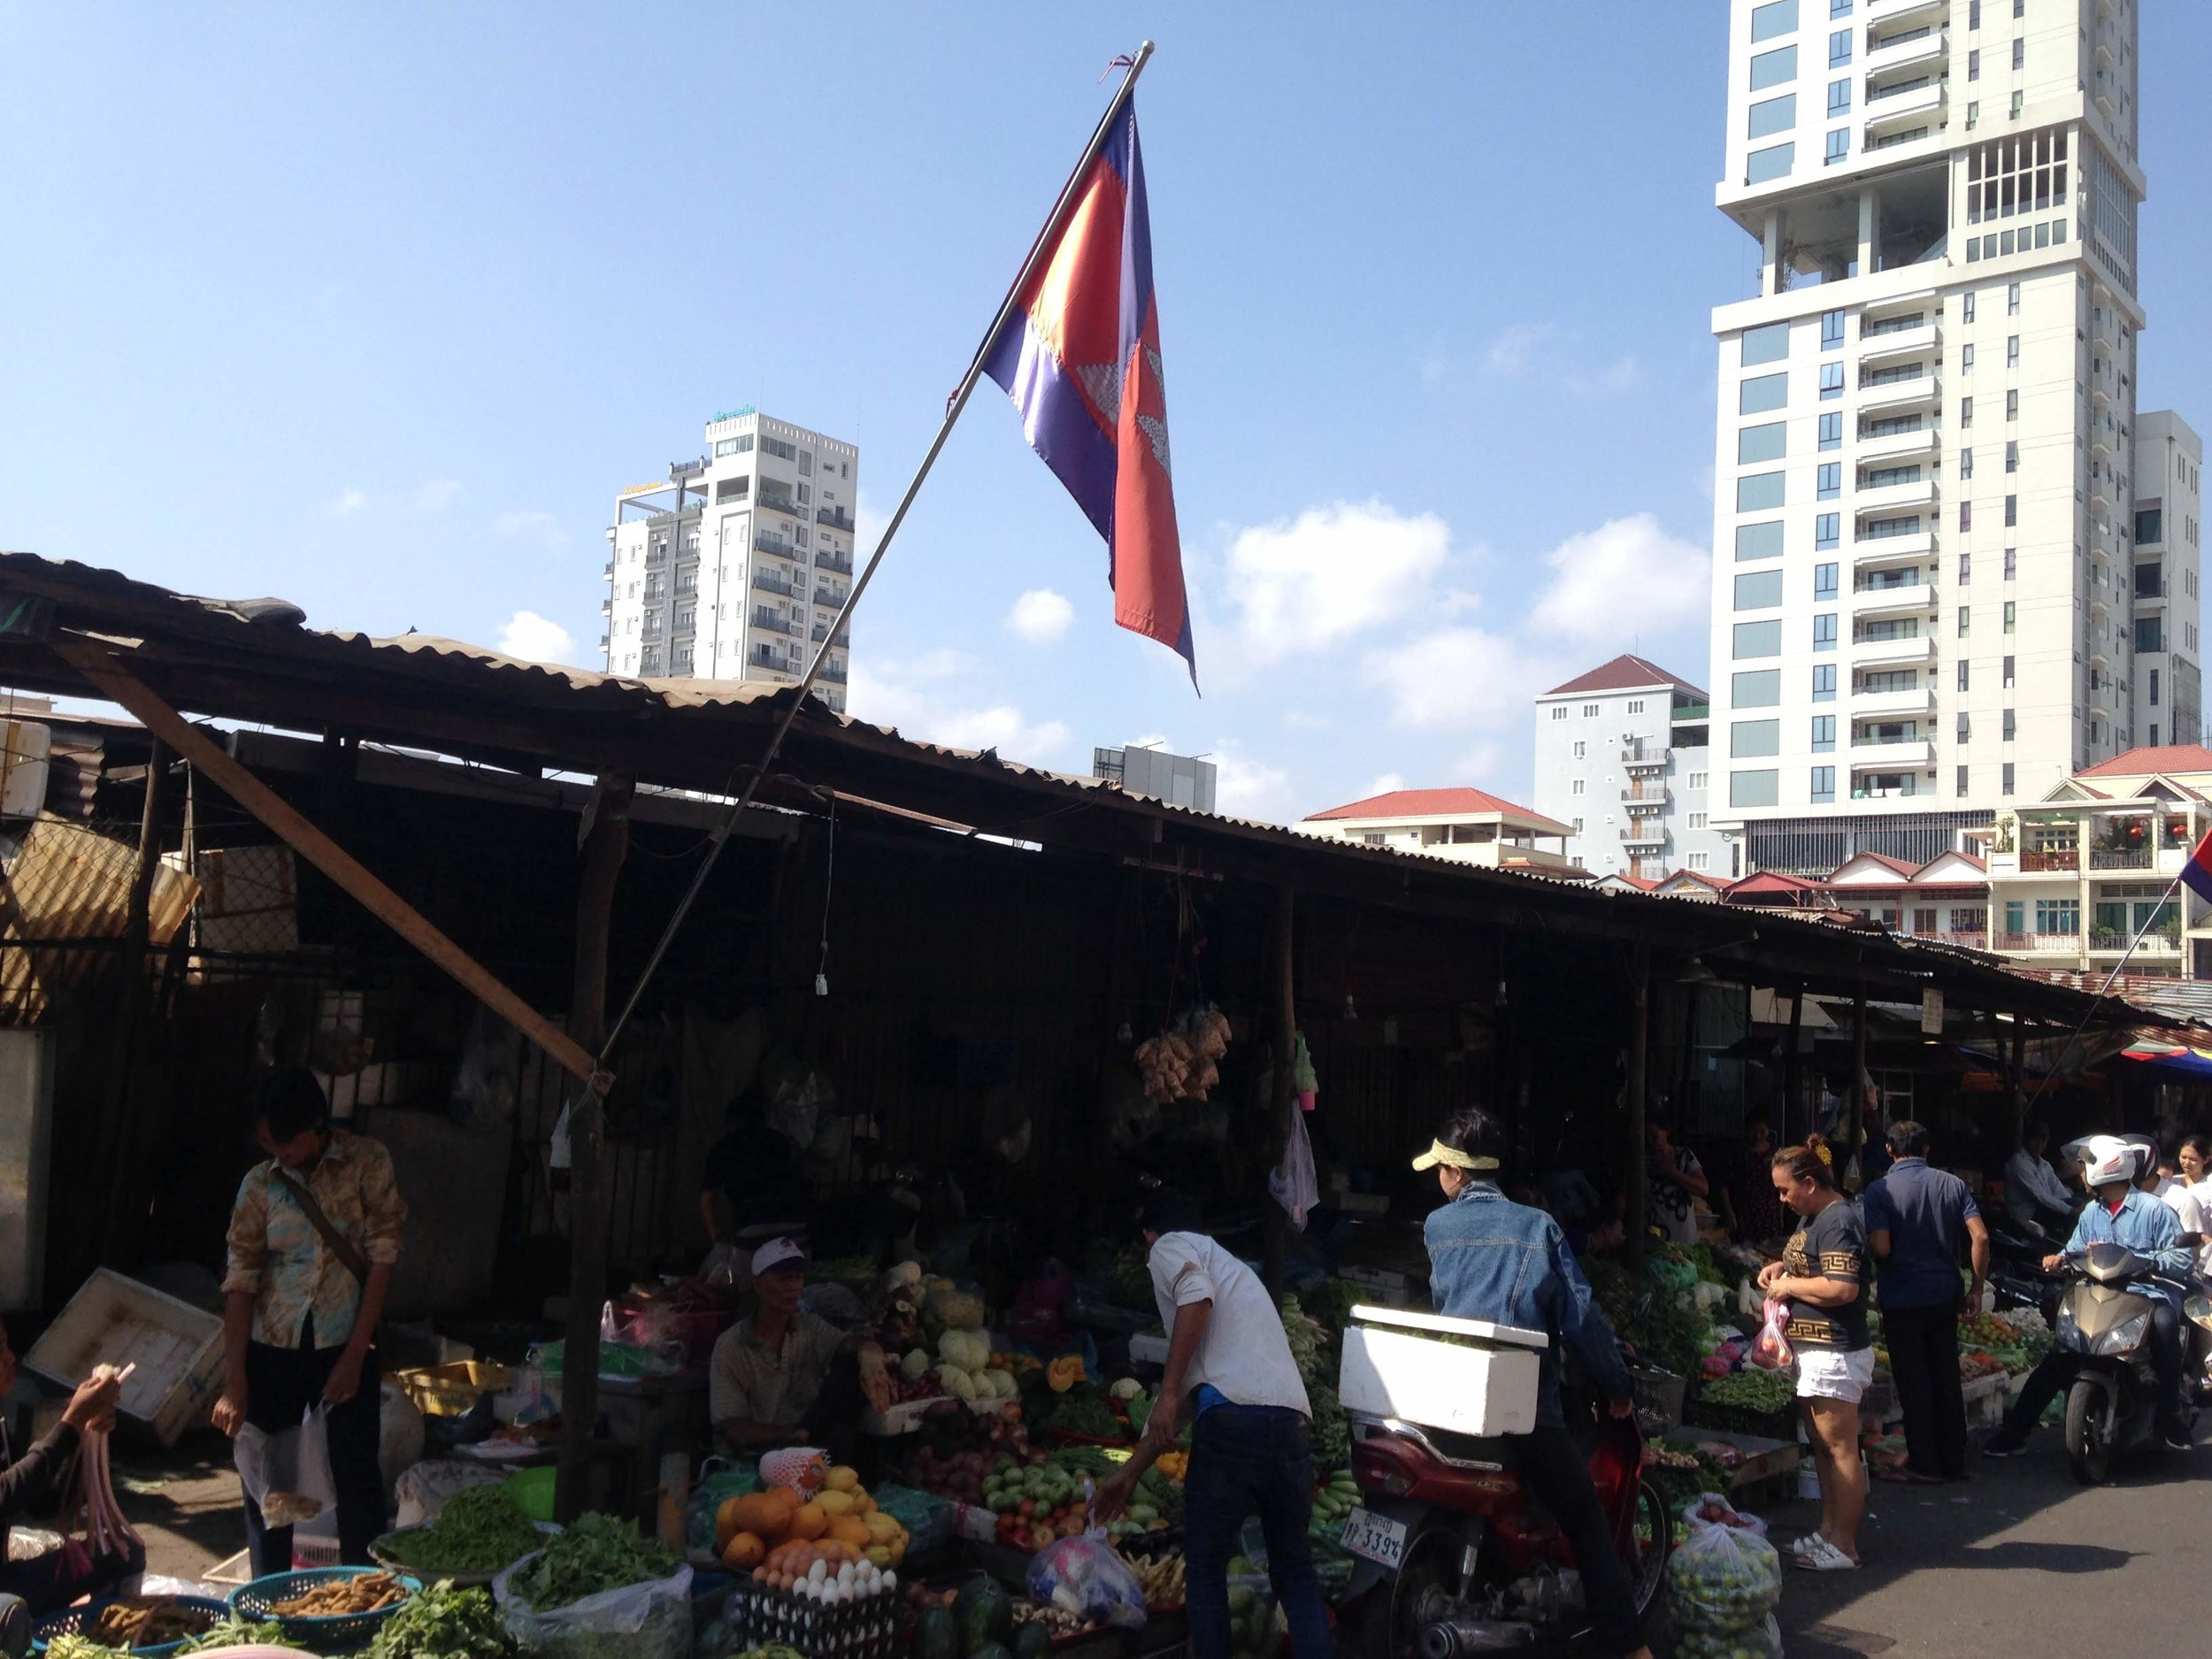 fresh produce at the Russian Market